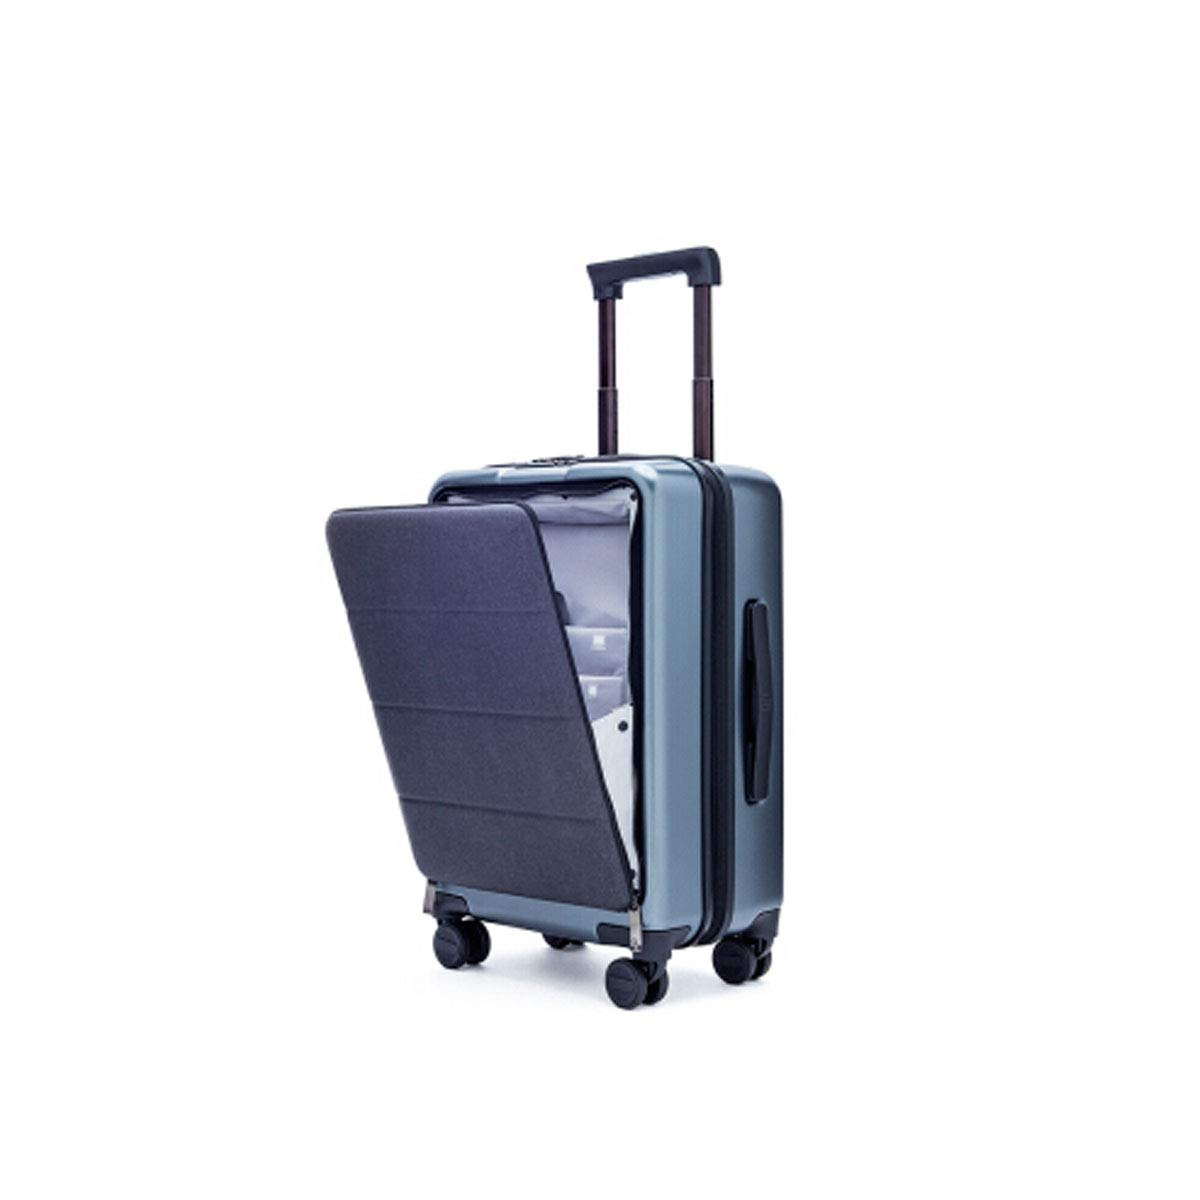 6ceafd863988 Amazon.com: Haoyushangmao Hard Travel Bag, Trolley case, Simple ...